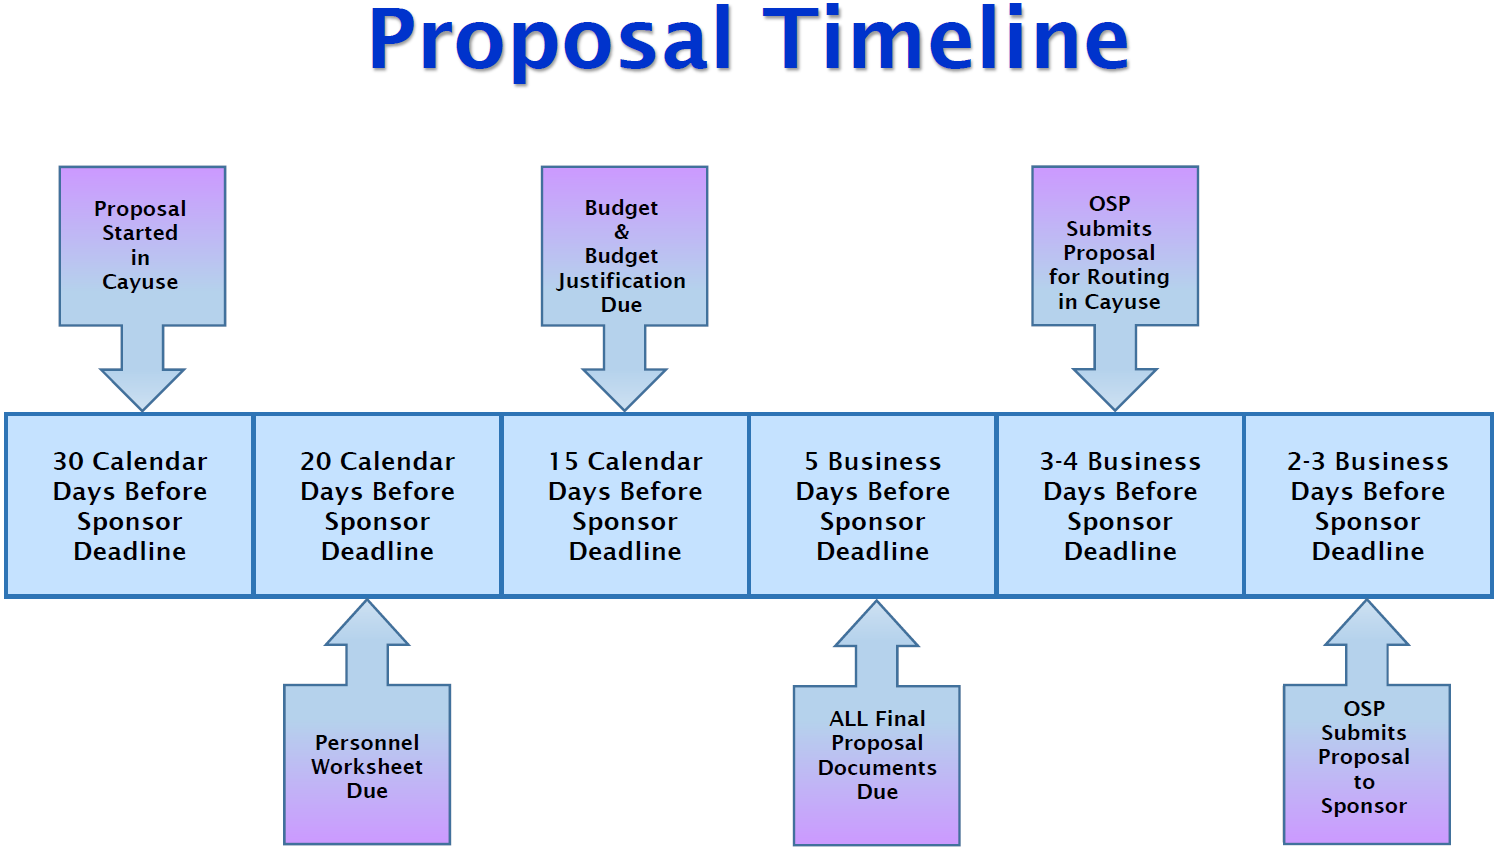 OSP Internal Proposal Submission Timeline:  The timeline describes the proposal submissions process.  The faculty and staff at TTUHSC El Paso are required to follow this timeline when submitting proposals for sponsored programs/projects to funding agencies.  30 days before the agency deadline a NOI is required to be submitted to OSP.  20 days before the agency deadline the administration should begin working on the budget and budget justification.  15 days before agency deadline the budget and justification must be submitted to OSP for review and approval.  10 days before the agency deadline the fully signed route sheet along with the final buget budget, budget justification and abstract or specific aims are due to OSP.  5 days before the agency deadline all final proposal documents are due to OSP for review and approval.  2 - 3 days before the agency deadline OSP completes and submits the proposal application to agency.